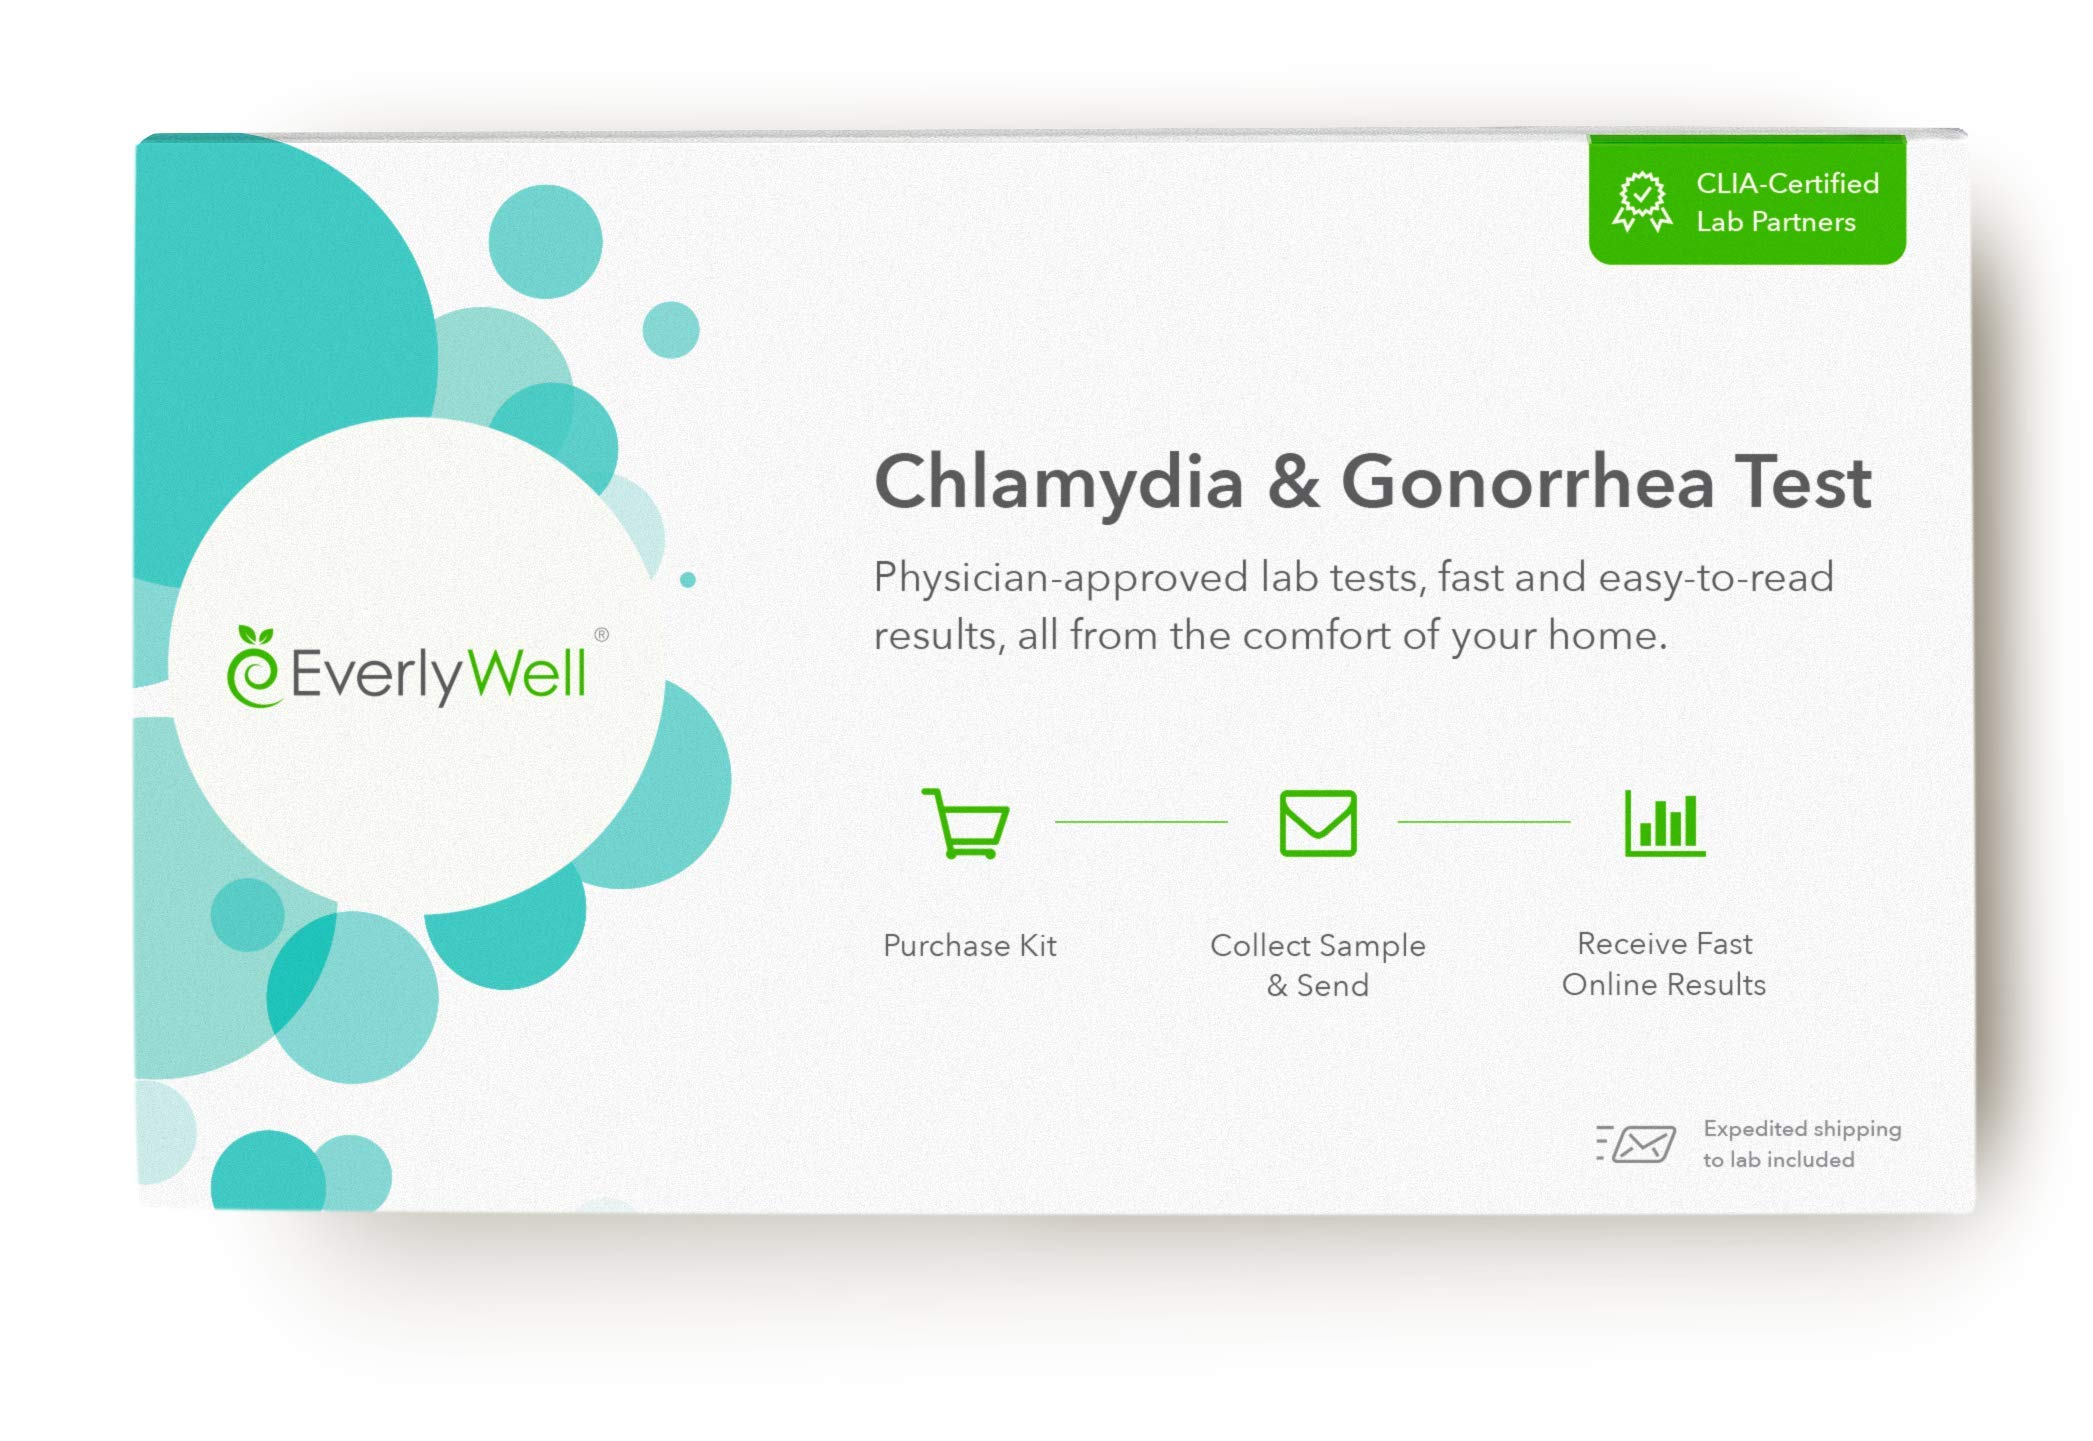 EverlyWell - at-Home Chlamydia and Gonorrhea Test - Discreetly Test for Chlamydia and Gonorrhea (Not Available in NY, NJ, RI, MD)